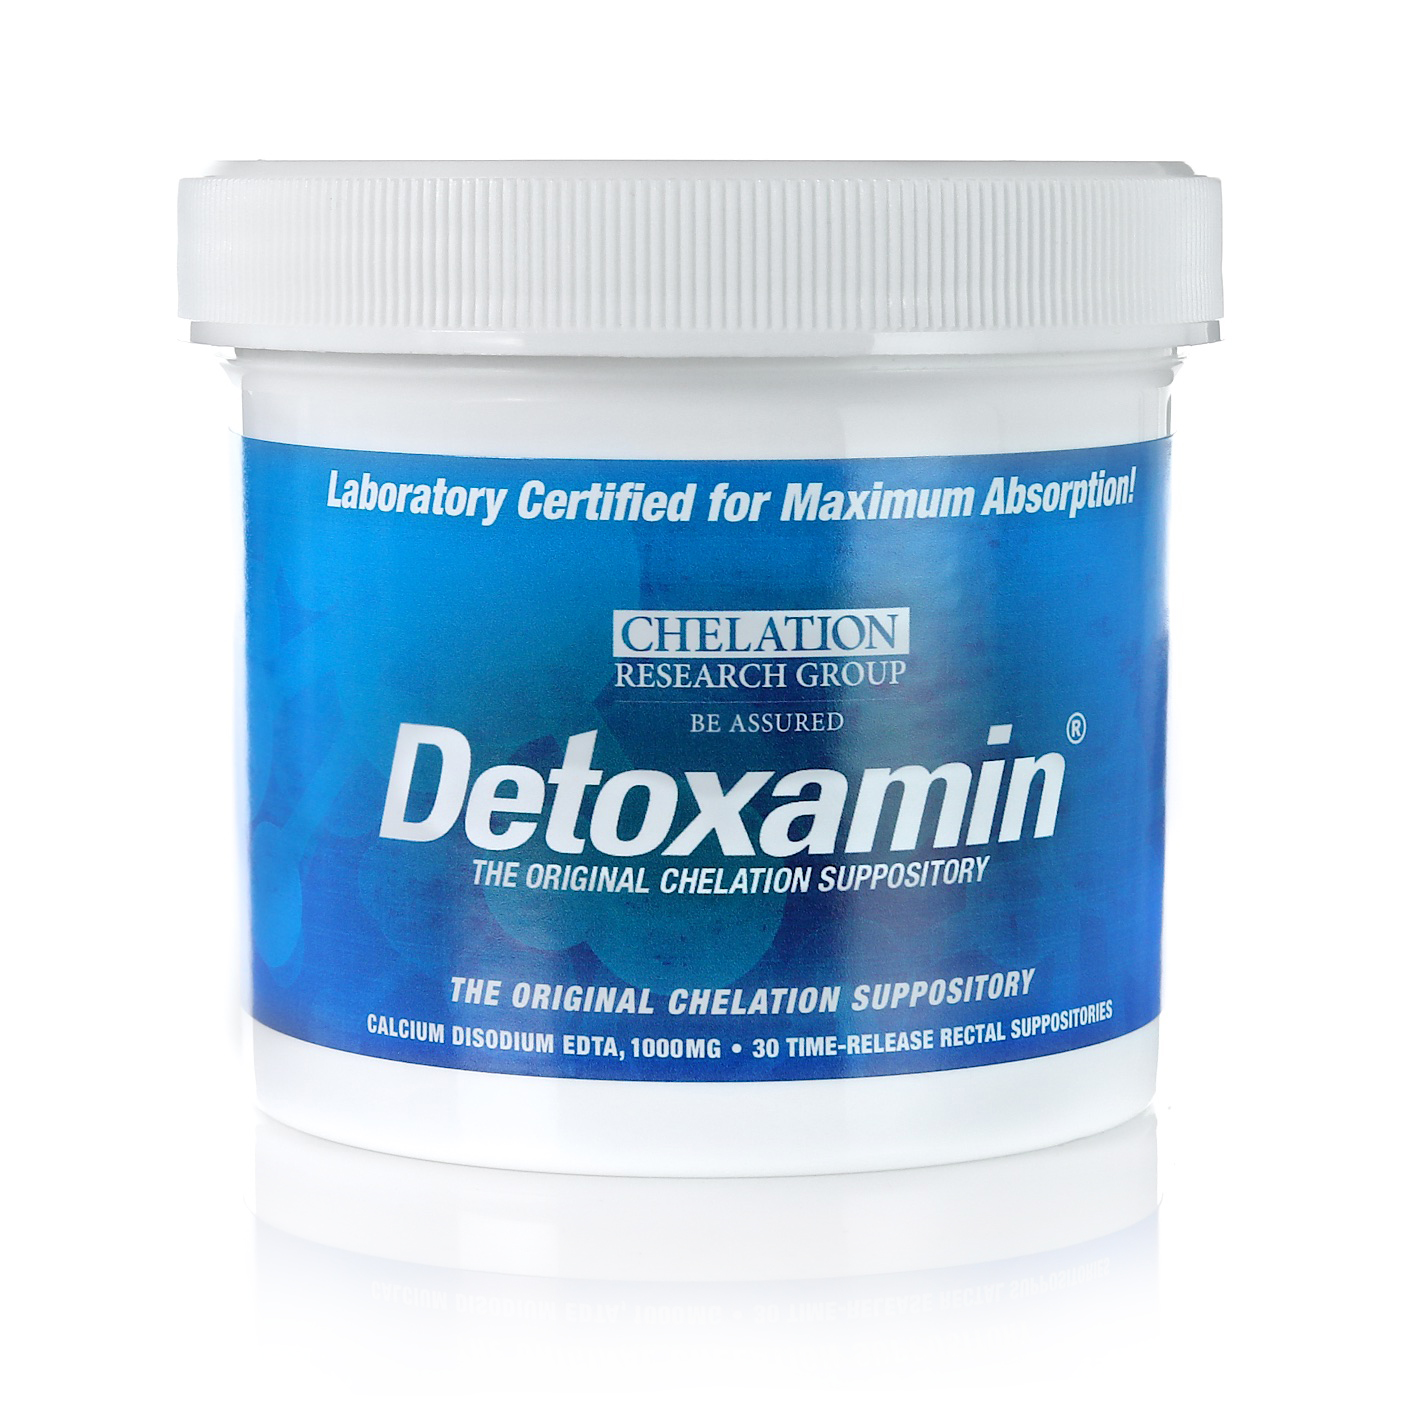 chelation therapy cost, heavy metal detox, metal detox, oral chelation, chelation therapy side effects, edta suppositories, metal chelation, heavy metal detox symptoms, edta chelation therapy, heavy metal chelation, chelation treatment, edta chelation, edta supplement, chelation supplement, IV chelation therapy, IV chelation, mercury chelation, lead chelation